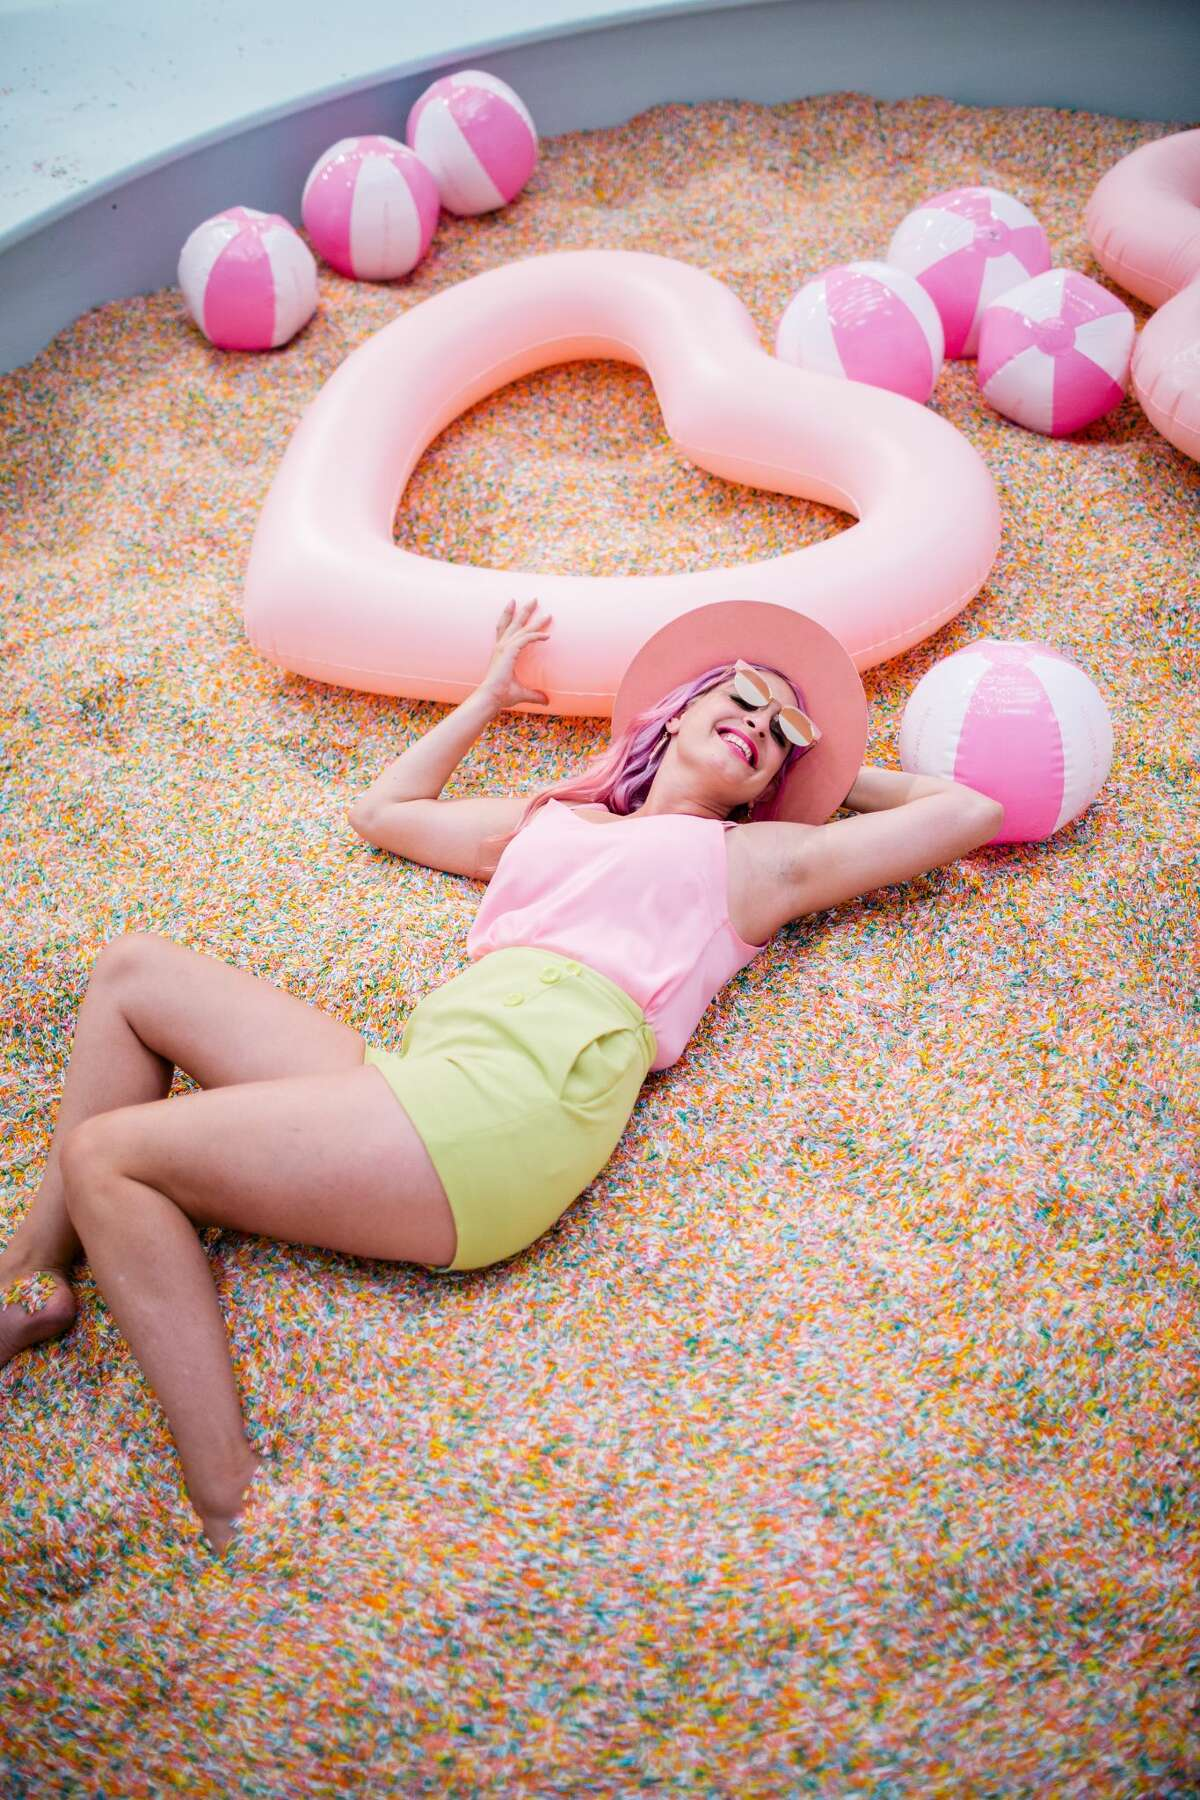 The Museum of Ice Cream is a popular, Instagram-friendly destination in San Francisco.